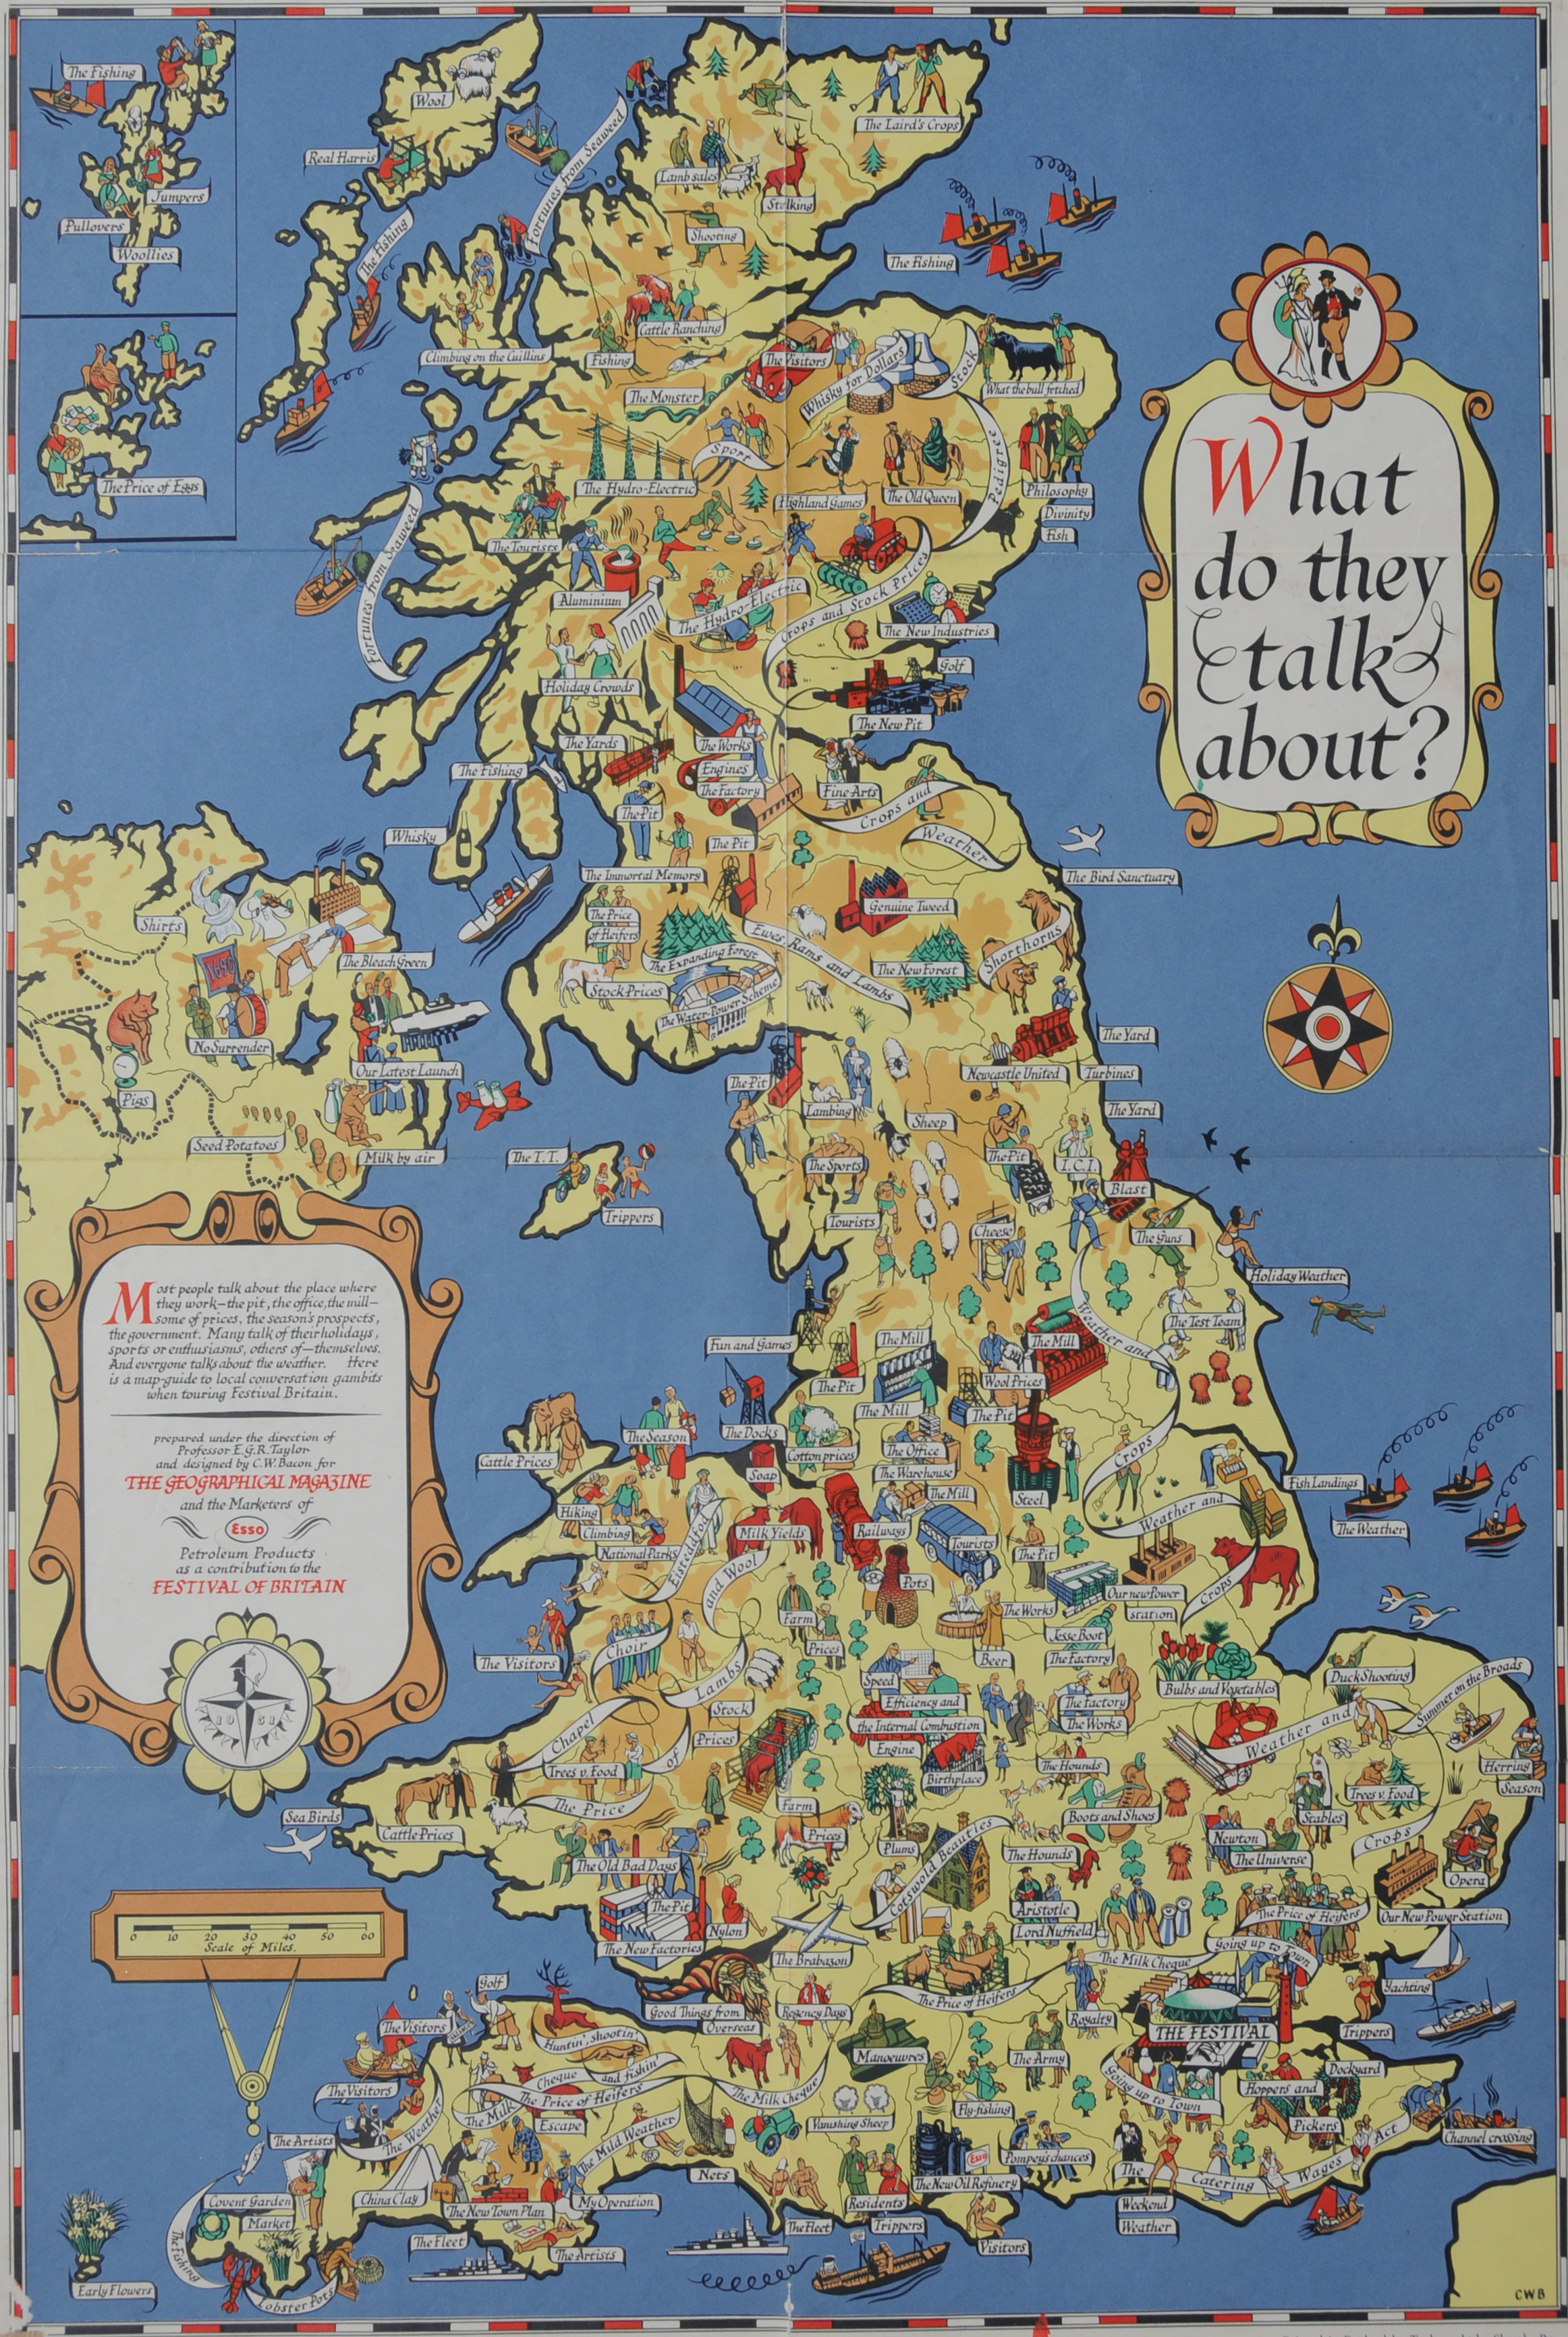 London Great Britain Map.The Festival Of Britain Maps Football Guidebooks Science And